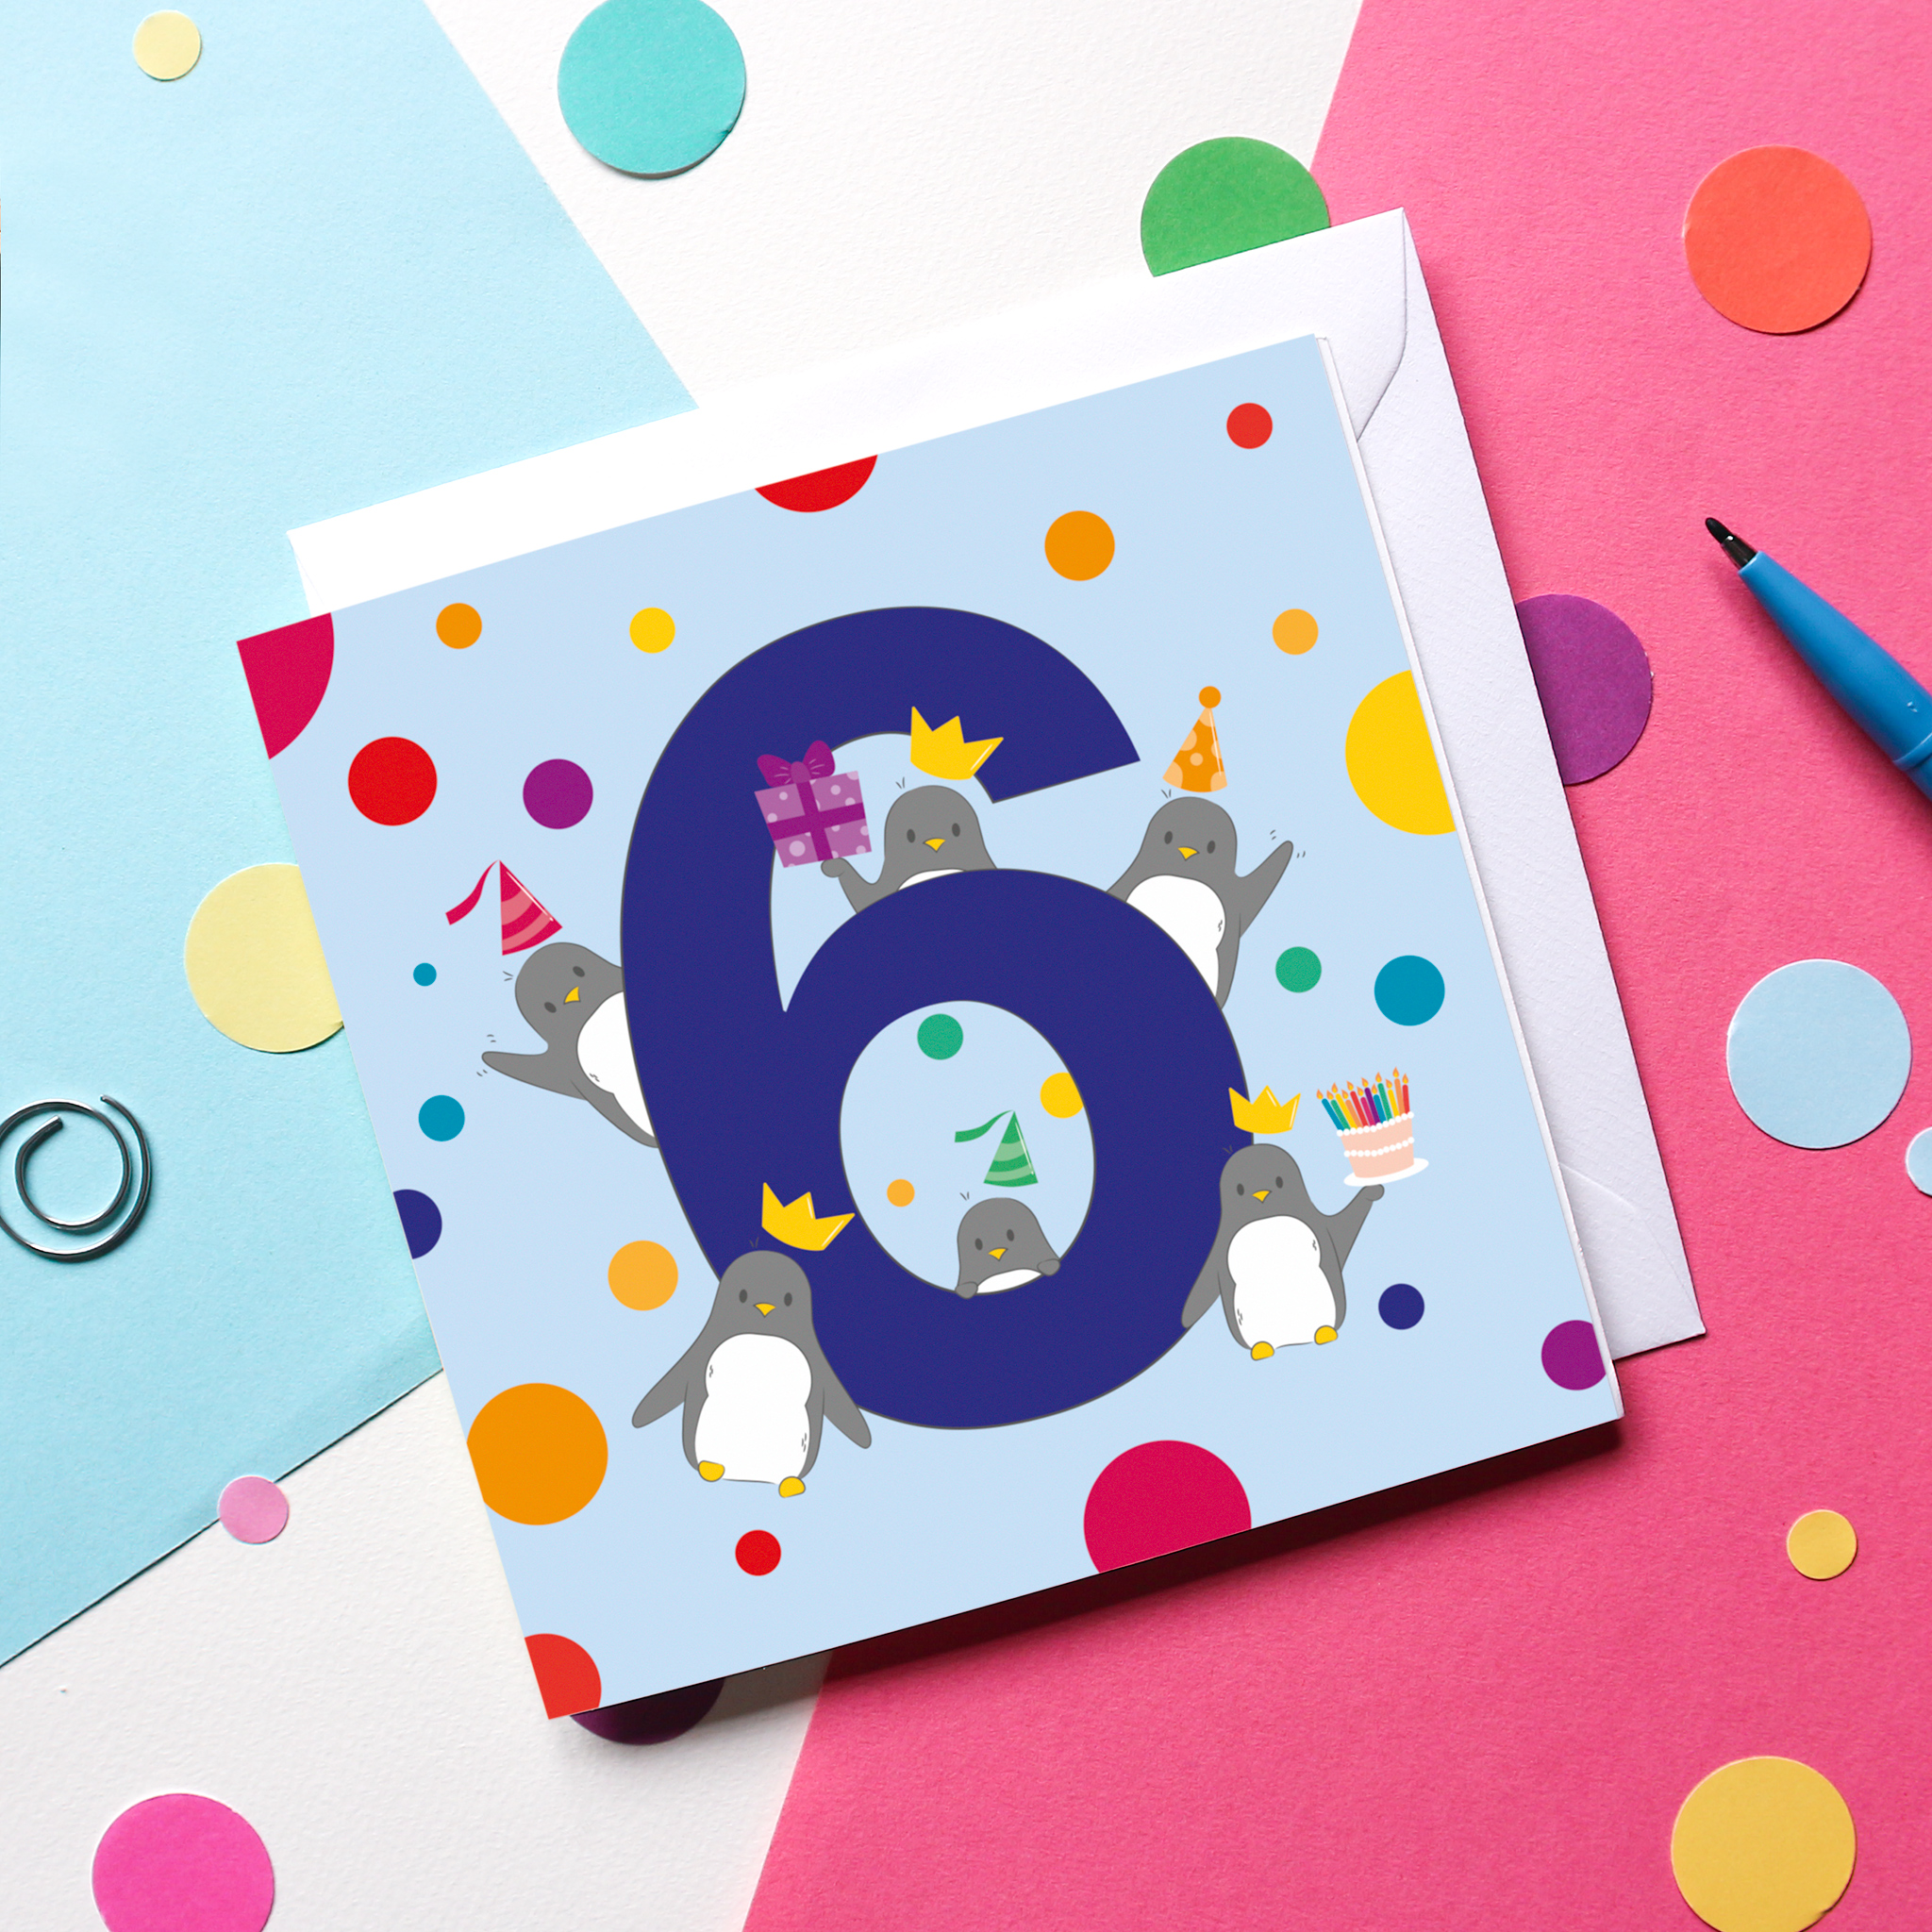 A Penguin-themed 6th Birthday Card on a colourful background surrounded by confetti and a pen.